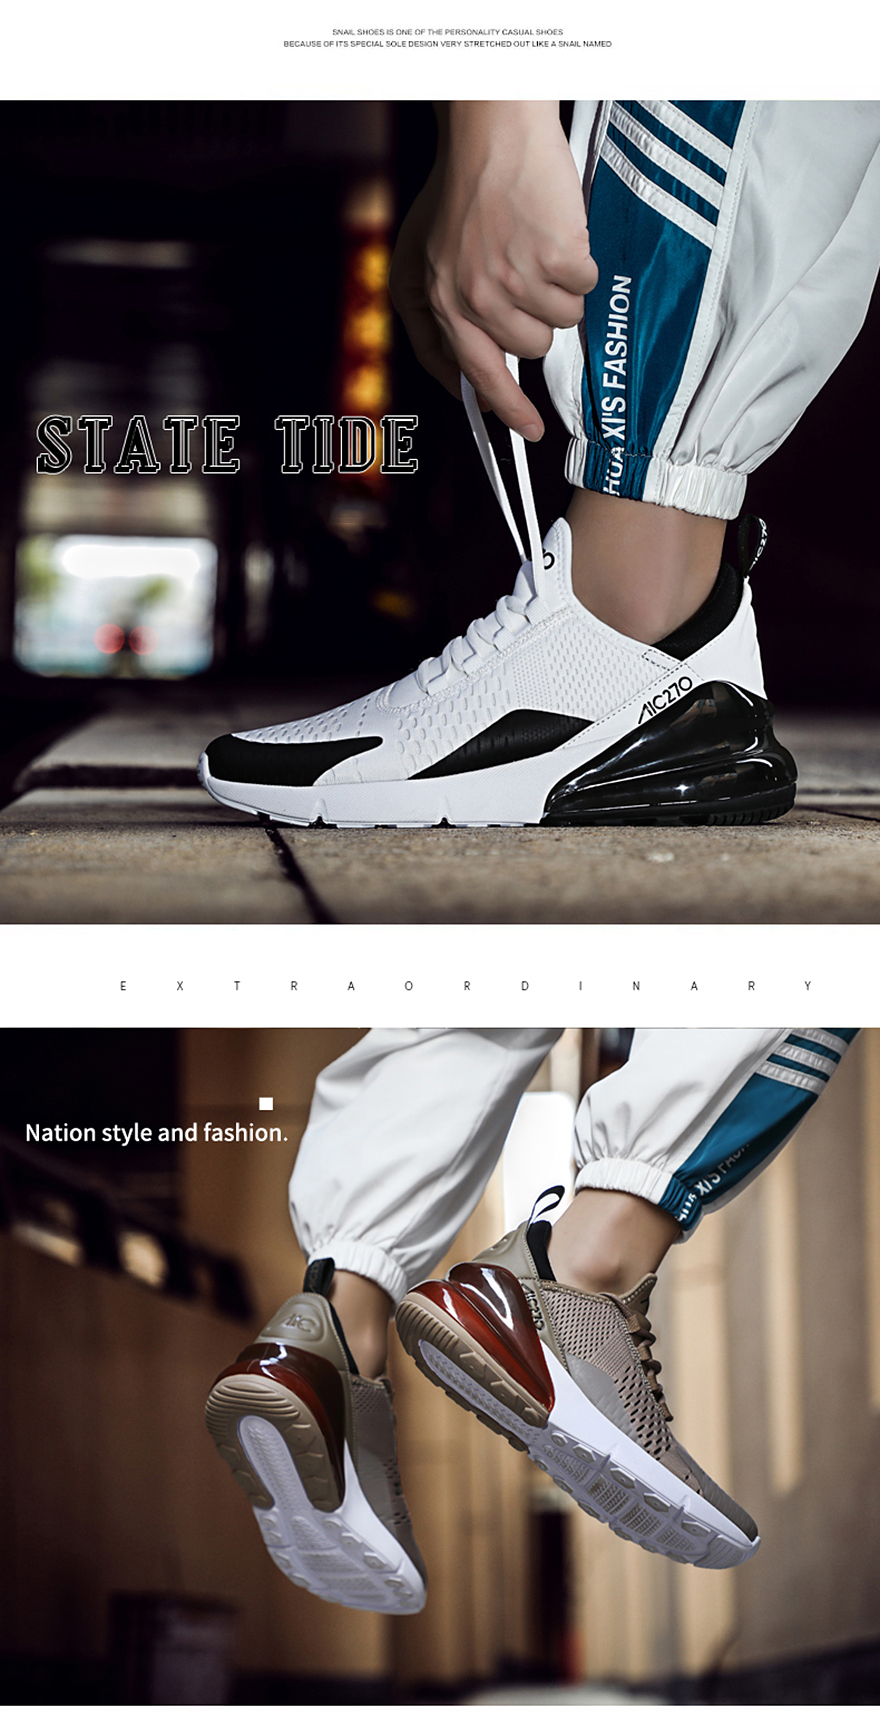 HTB1uE22RmzqK1RjSZFLq6An2XXar 2019 Casual Shoes Men Lightweight Running Male Shoes Breathable Mesh Sport Men Sneakers Flat Outdoor Footwear Summer Trainers